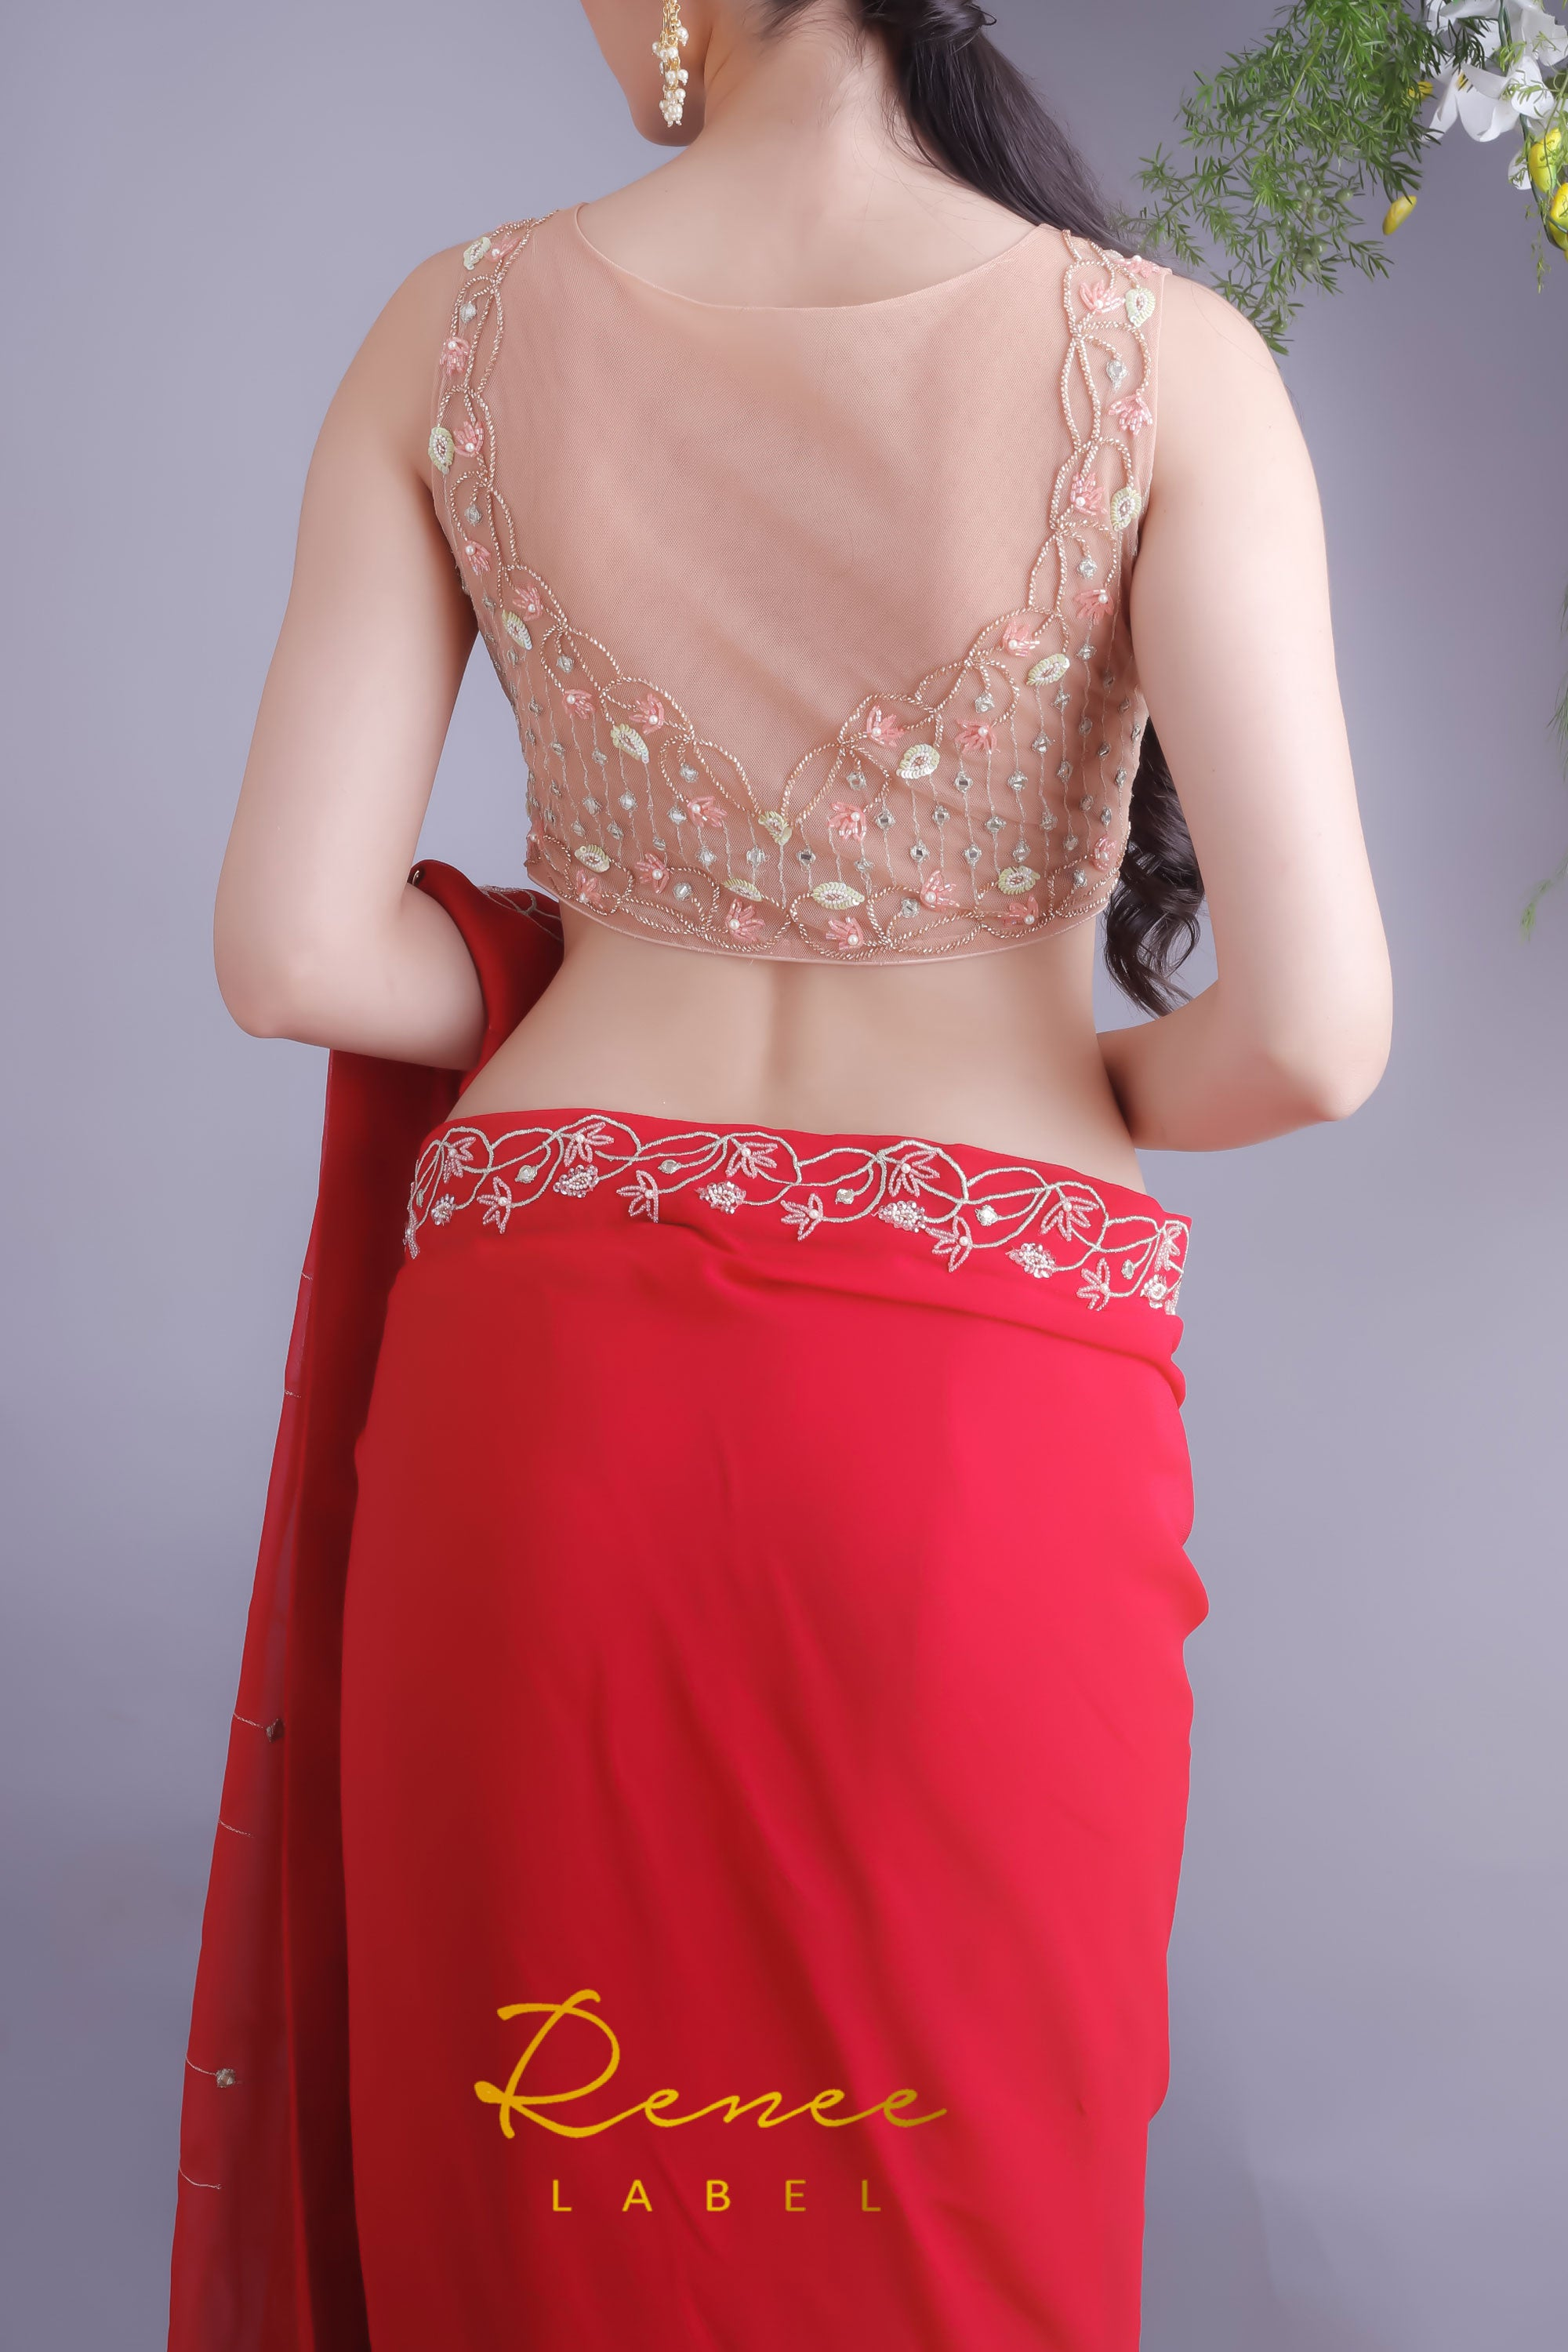 Rose Red Saree & Nude Blouse Closeup